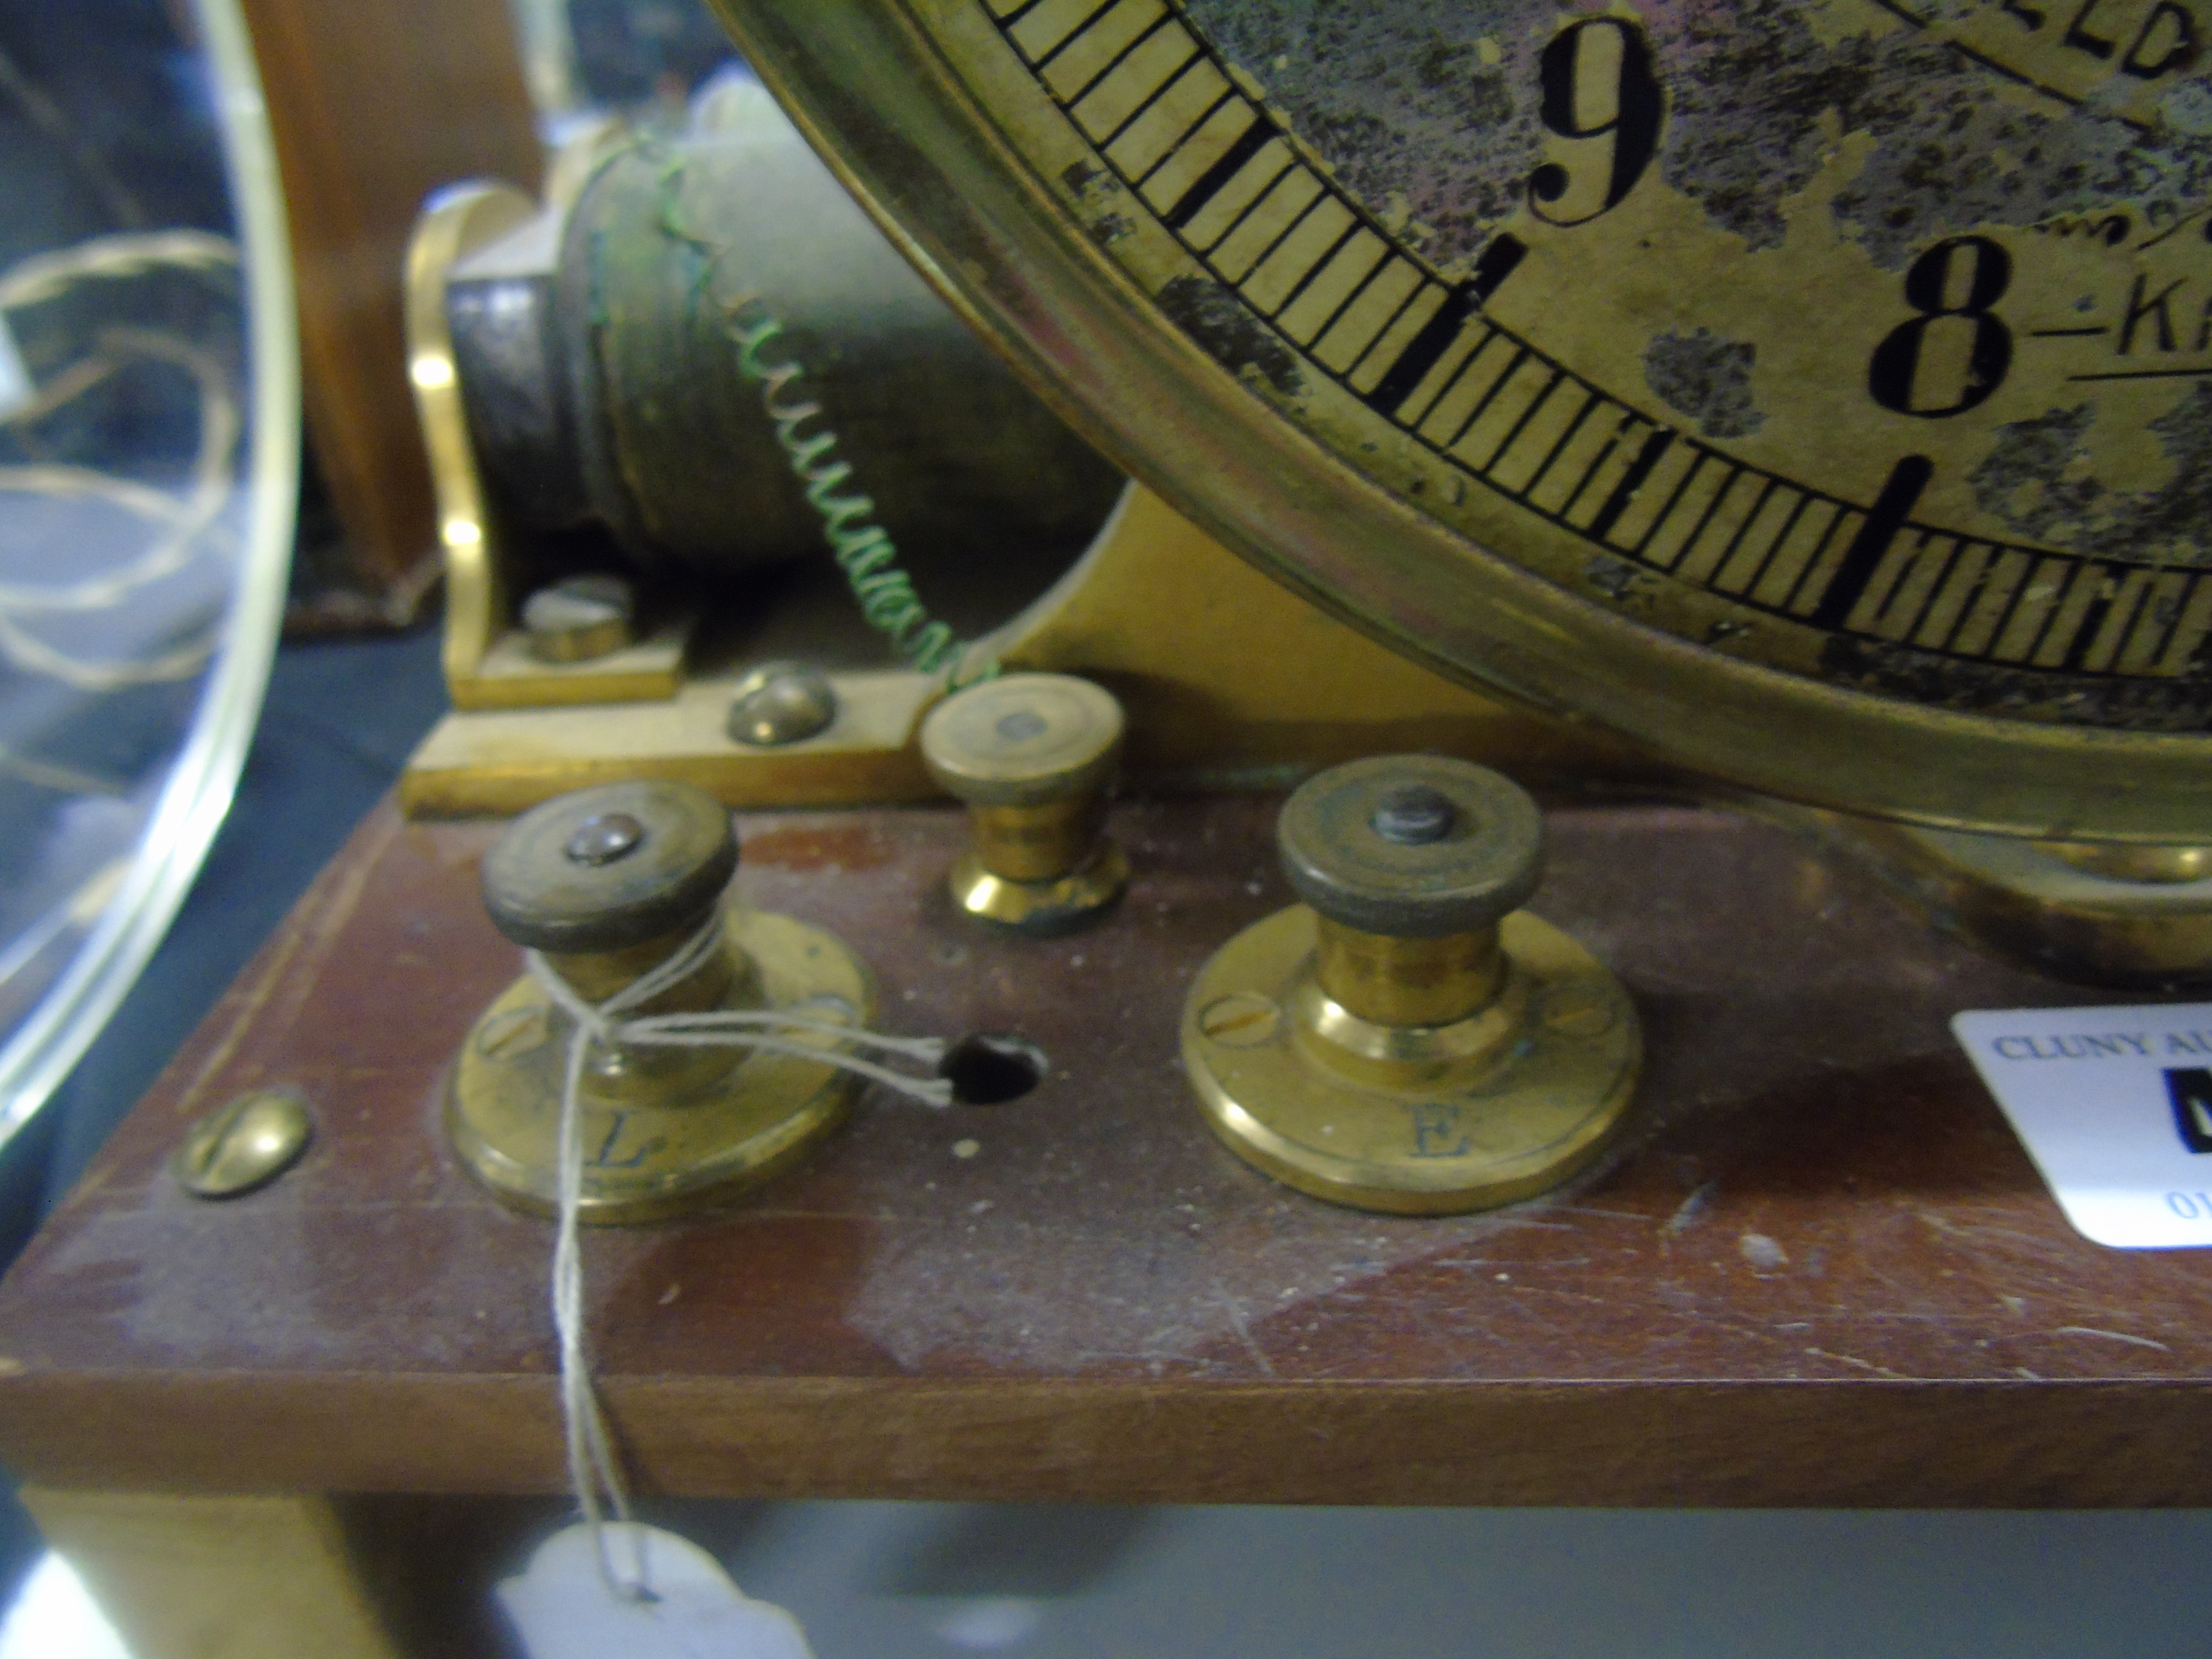 Lot 47 - ELECTRIC WATER LEVEL INDICATOR MADE BY GREENFIELD & KENNEDY KILMARNOCK CIRCA 1900 EST [£60-£120]